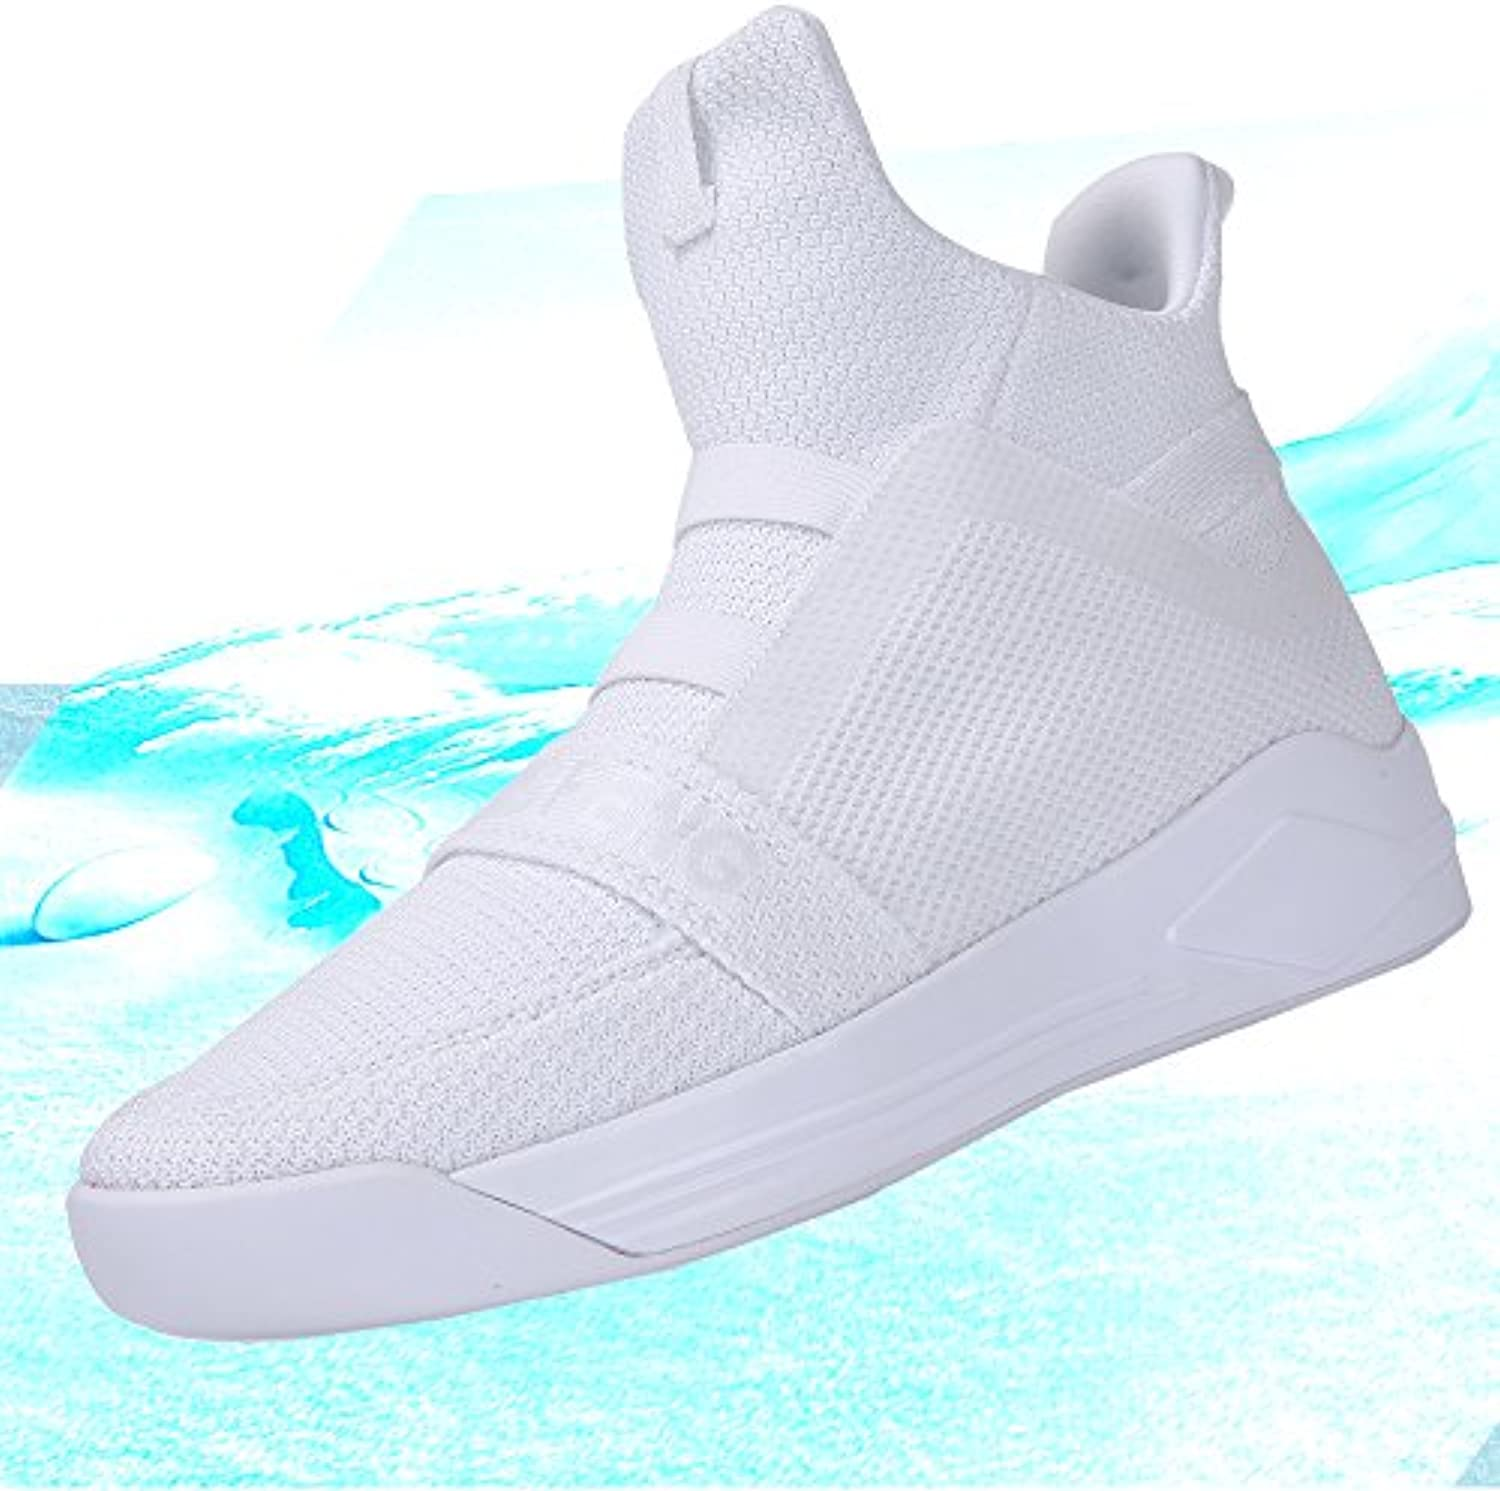 Soulsfeng Uomo Donna Stivali Casual Bthletic High Top Sneaker Mesh Bthletic Casual Shoes Traspirante Parent 3aff5c